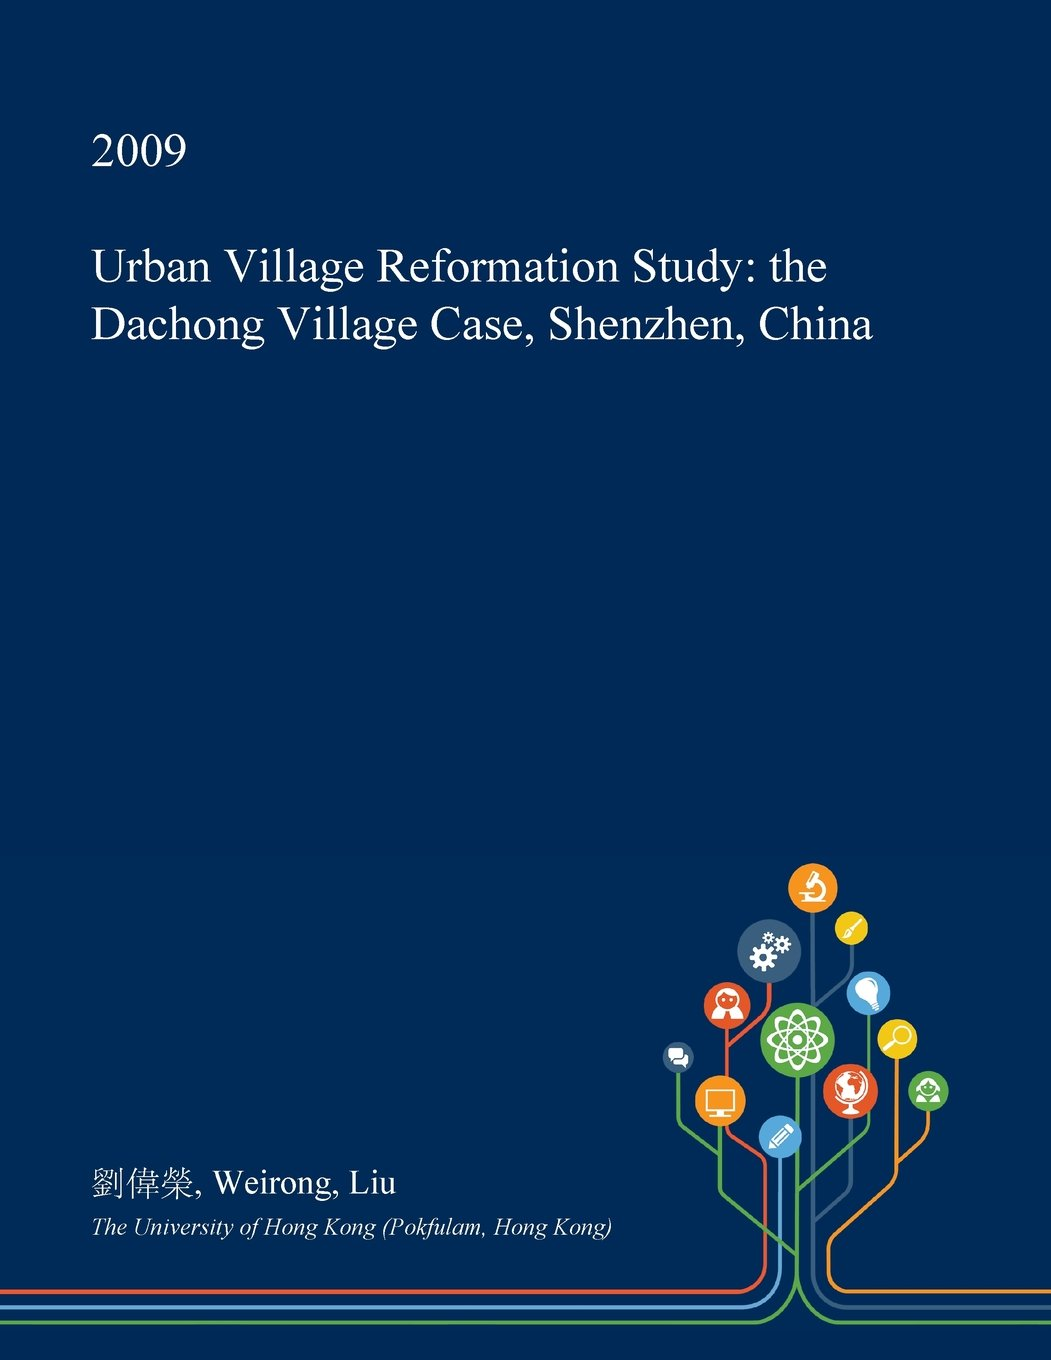 Urban Village Reformation Study: the Dachong Village Case